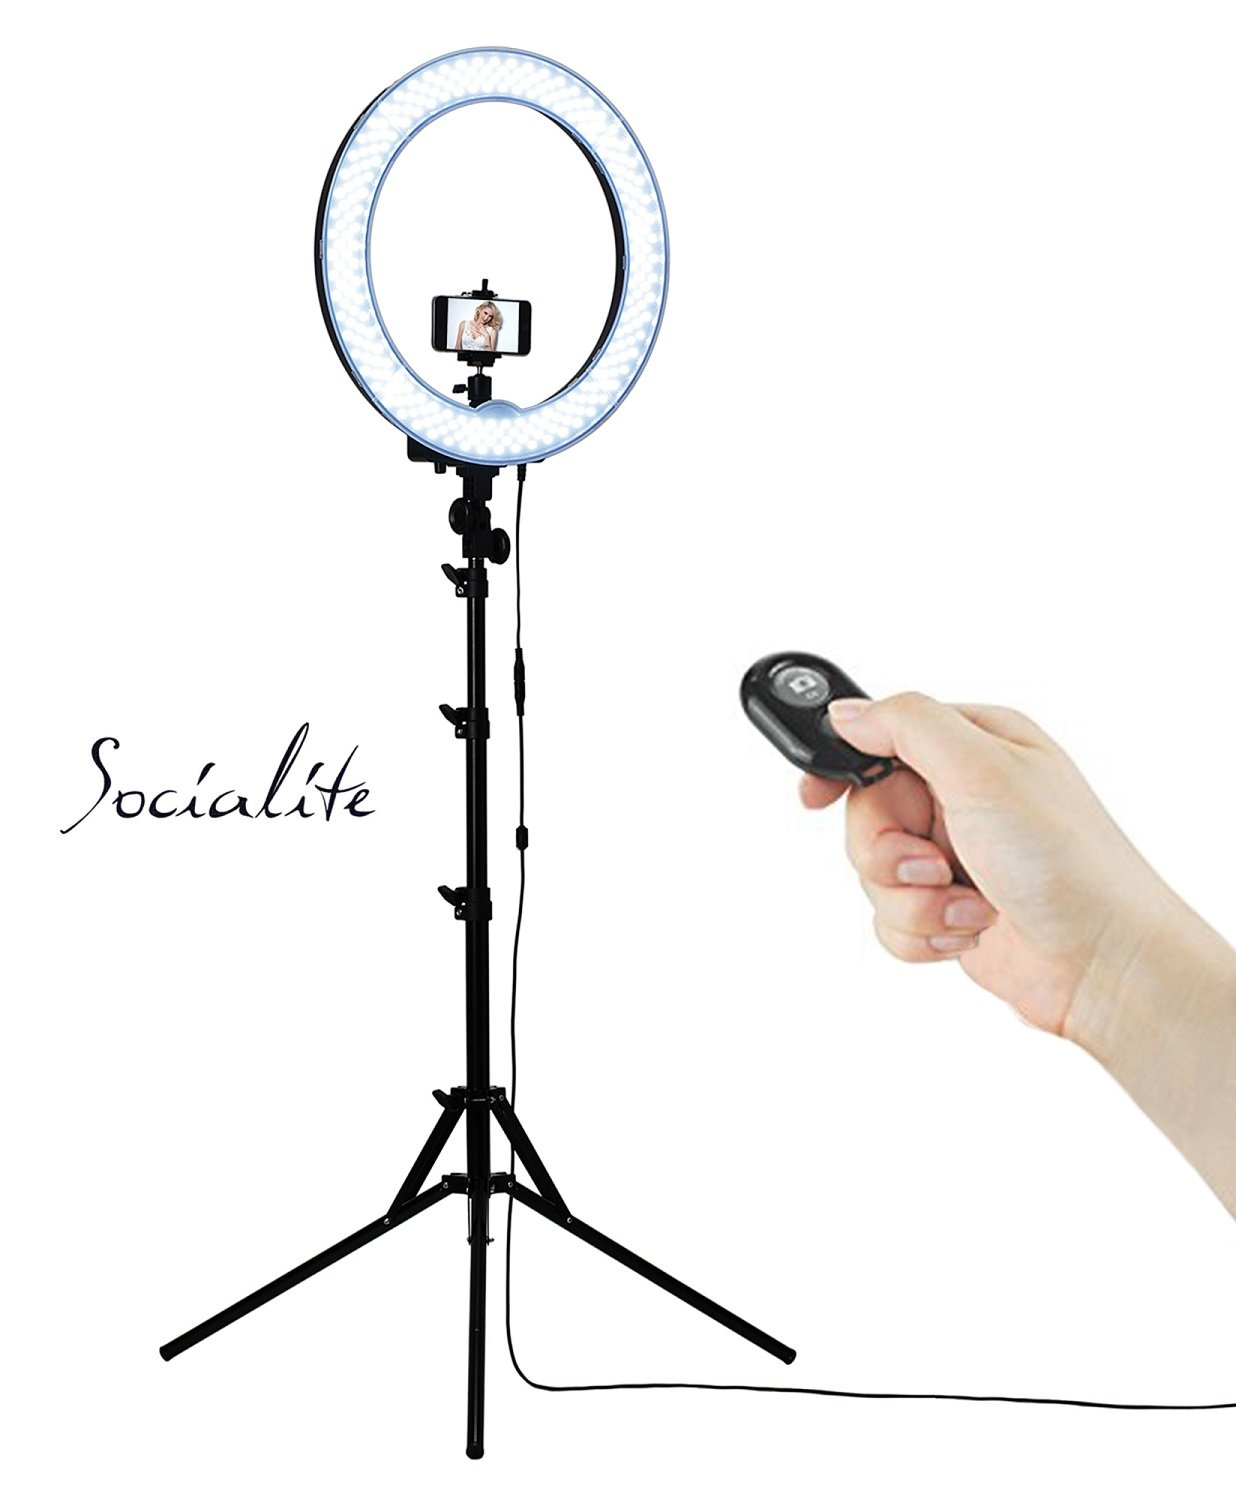 SOCIALITE 18'' LED Dimmable Photo Video Ring Light Kit - Incl Professional Social Media Photography Studio Light, 6ft Stand, Remote, Heavy Duty Mount for DSLR Camera Fits Iphone 6s Android Smartphones by Socialite